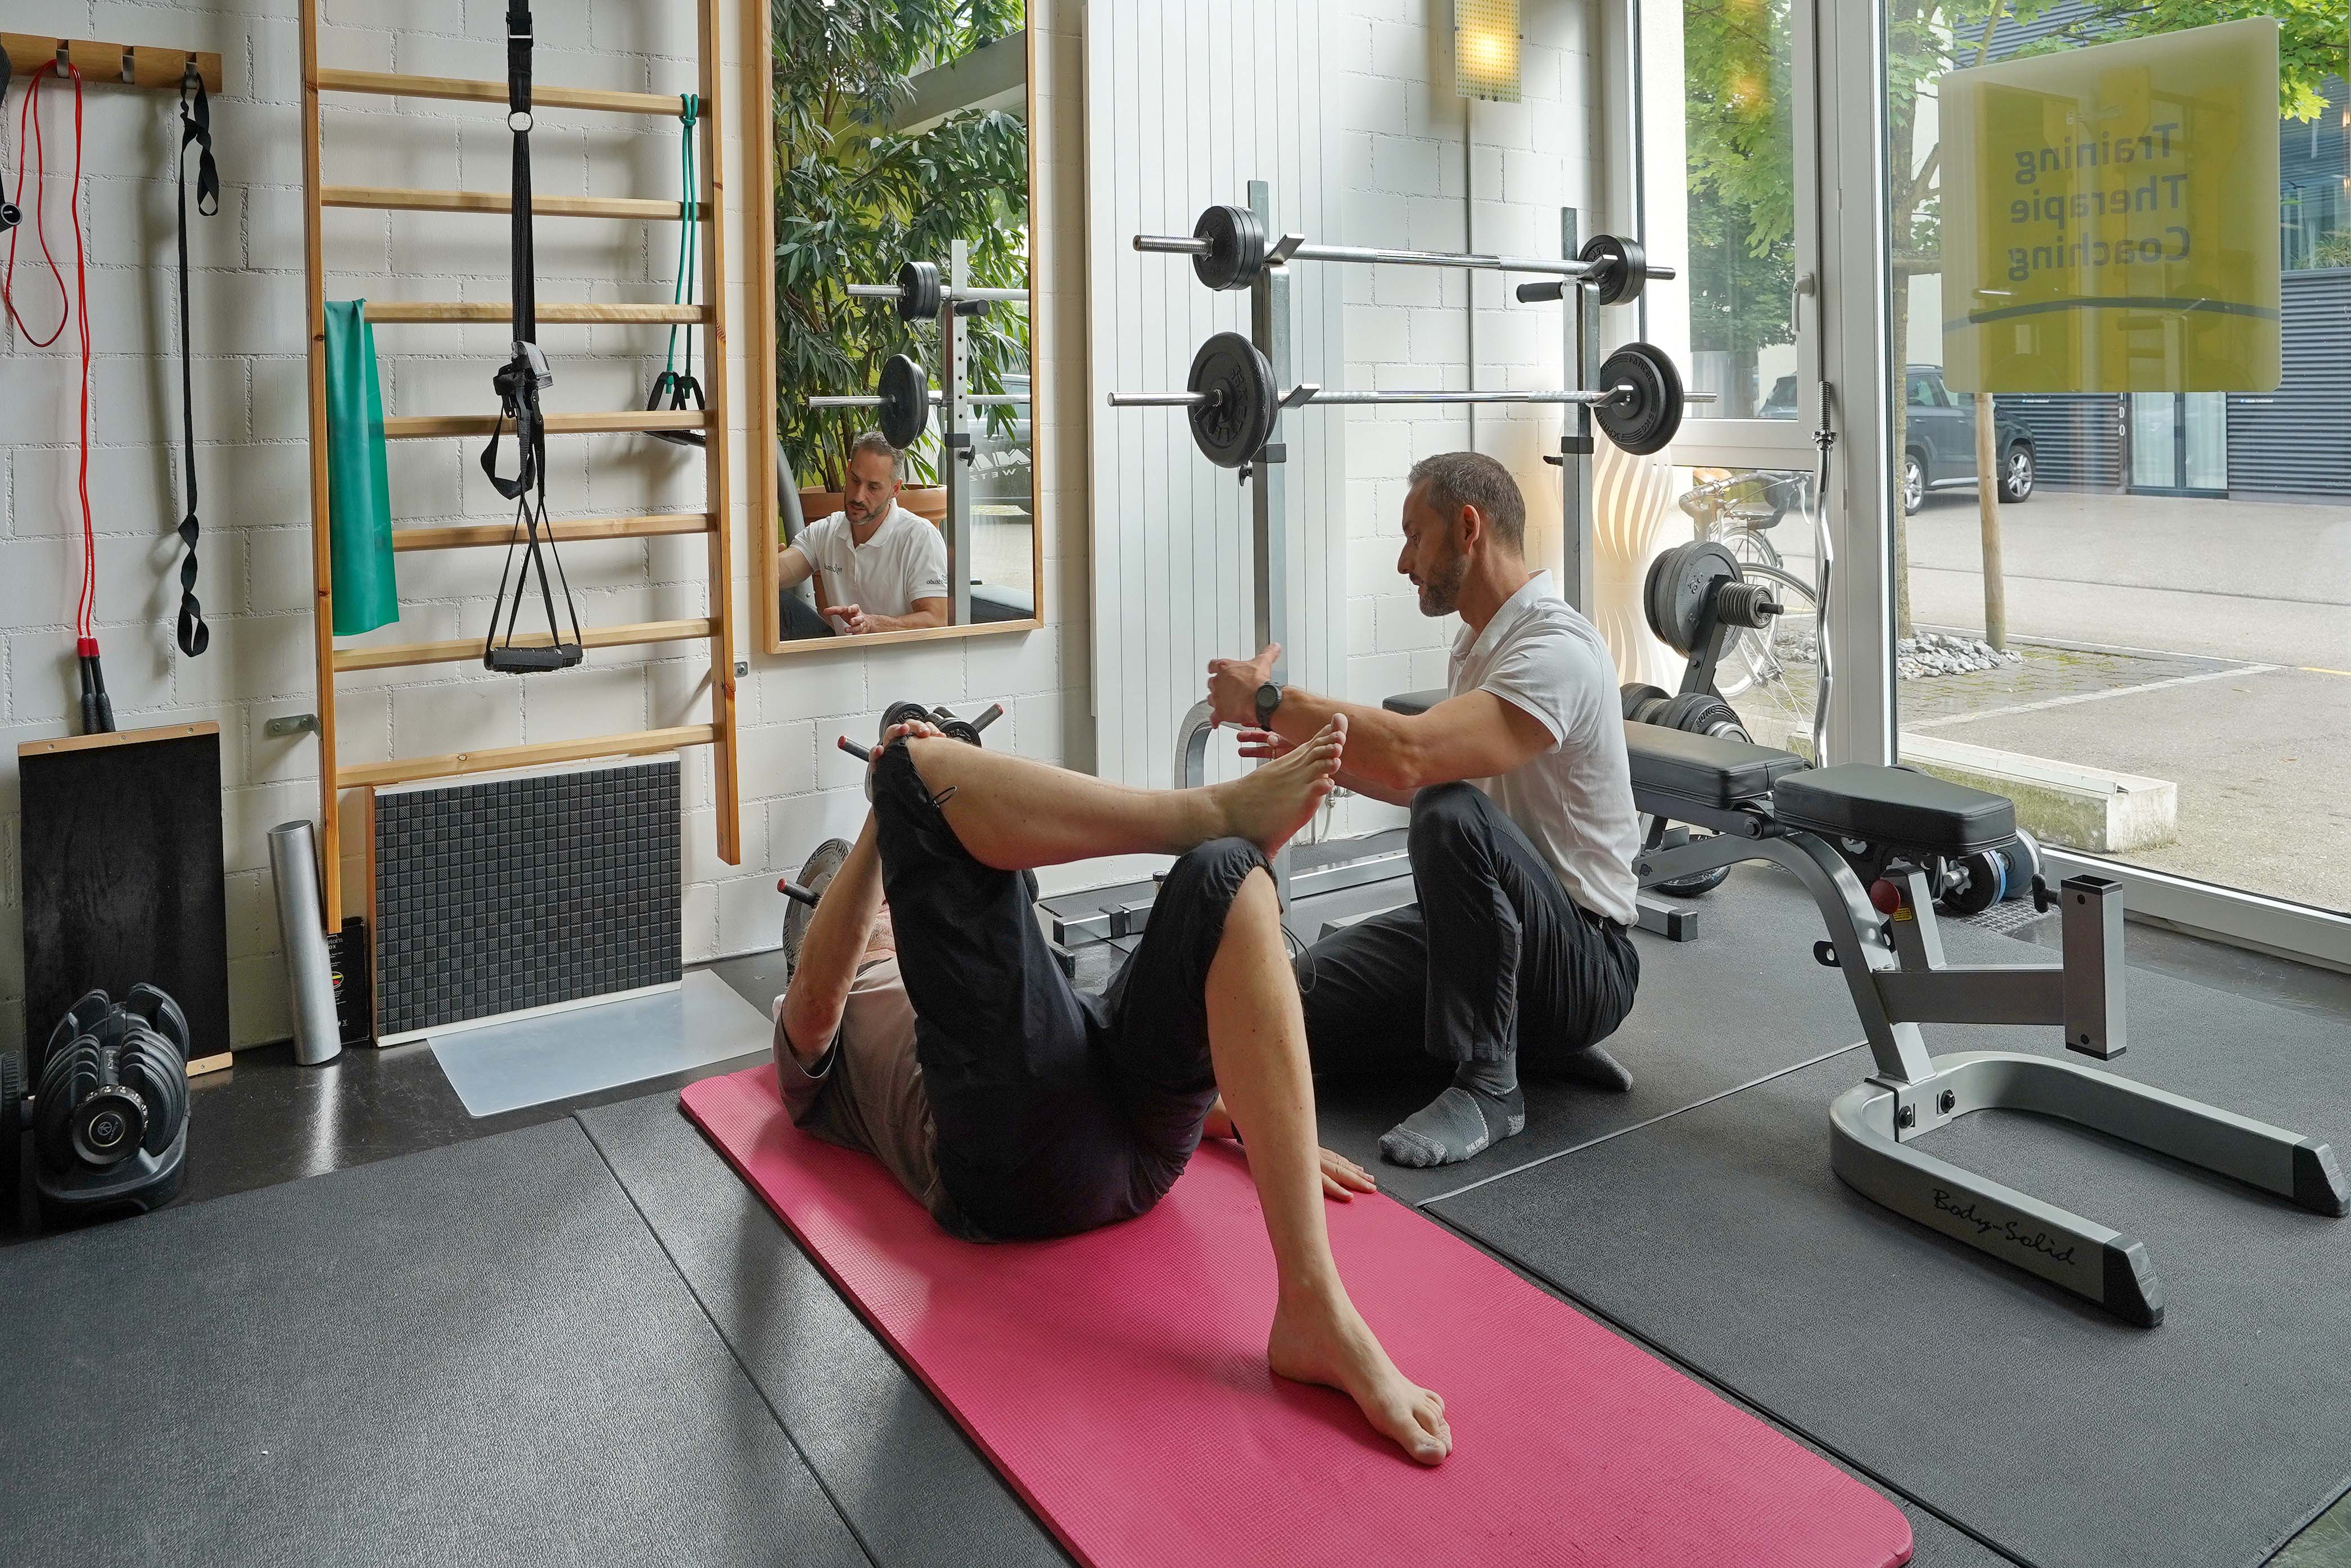 Gesundheit, Training, Coaching - Fit2Go Center in Uster 29